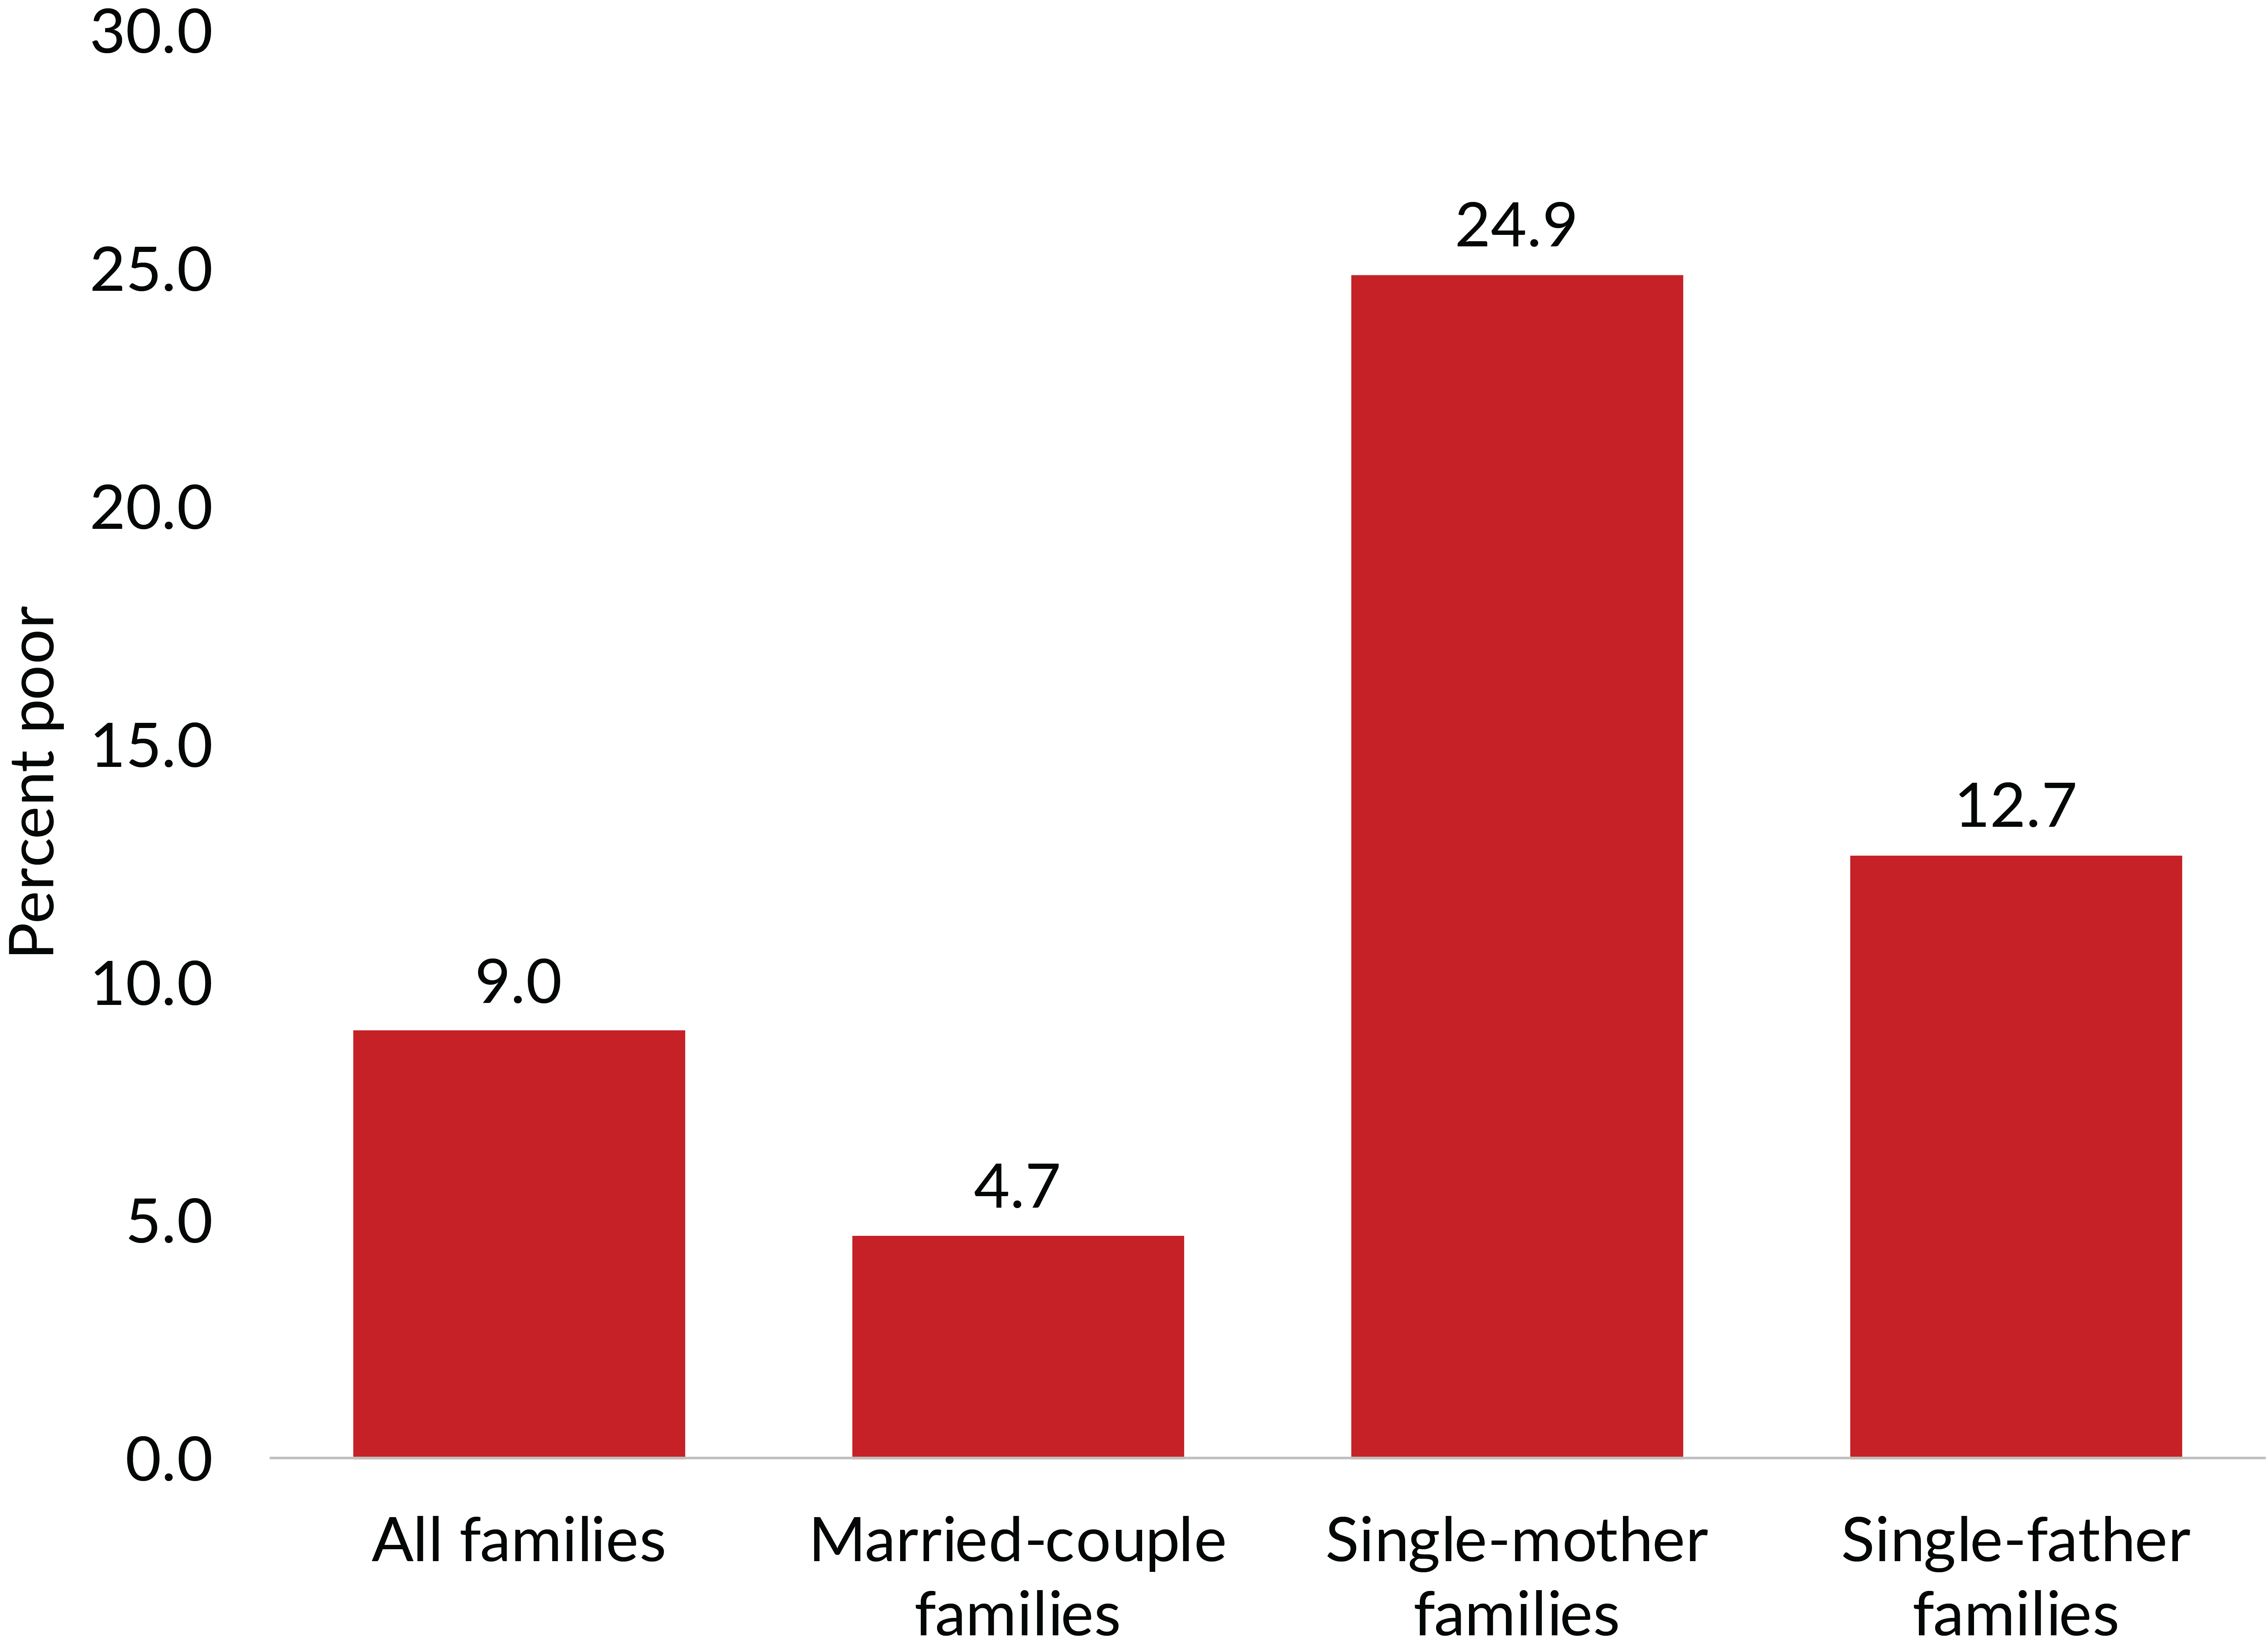 Figure 5. Poverty among single-parent families, especially those headed by a single mother, was highest among family types in 2018. Source: U.S. Census Bureau, Income and Poverty in the United States: 2018. Table B-2, p. 51.